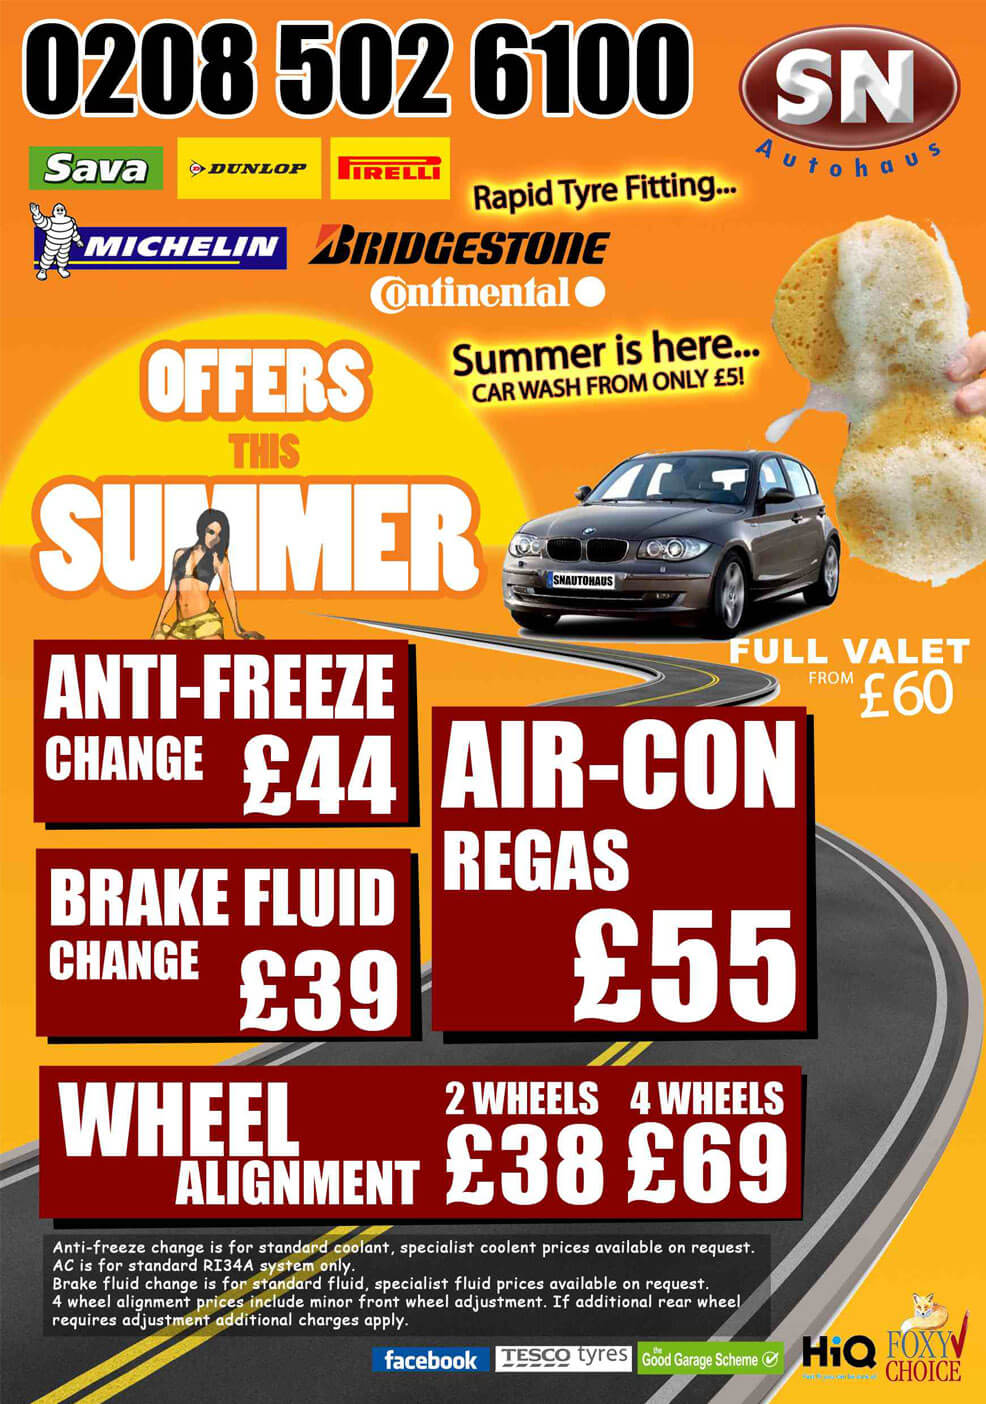 SN autohaus summer offers